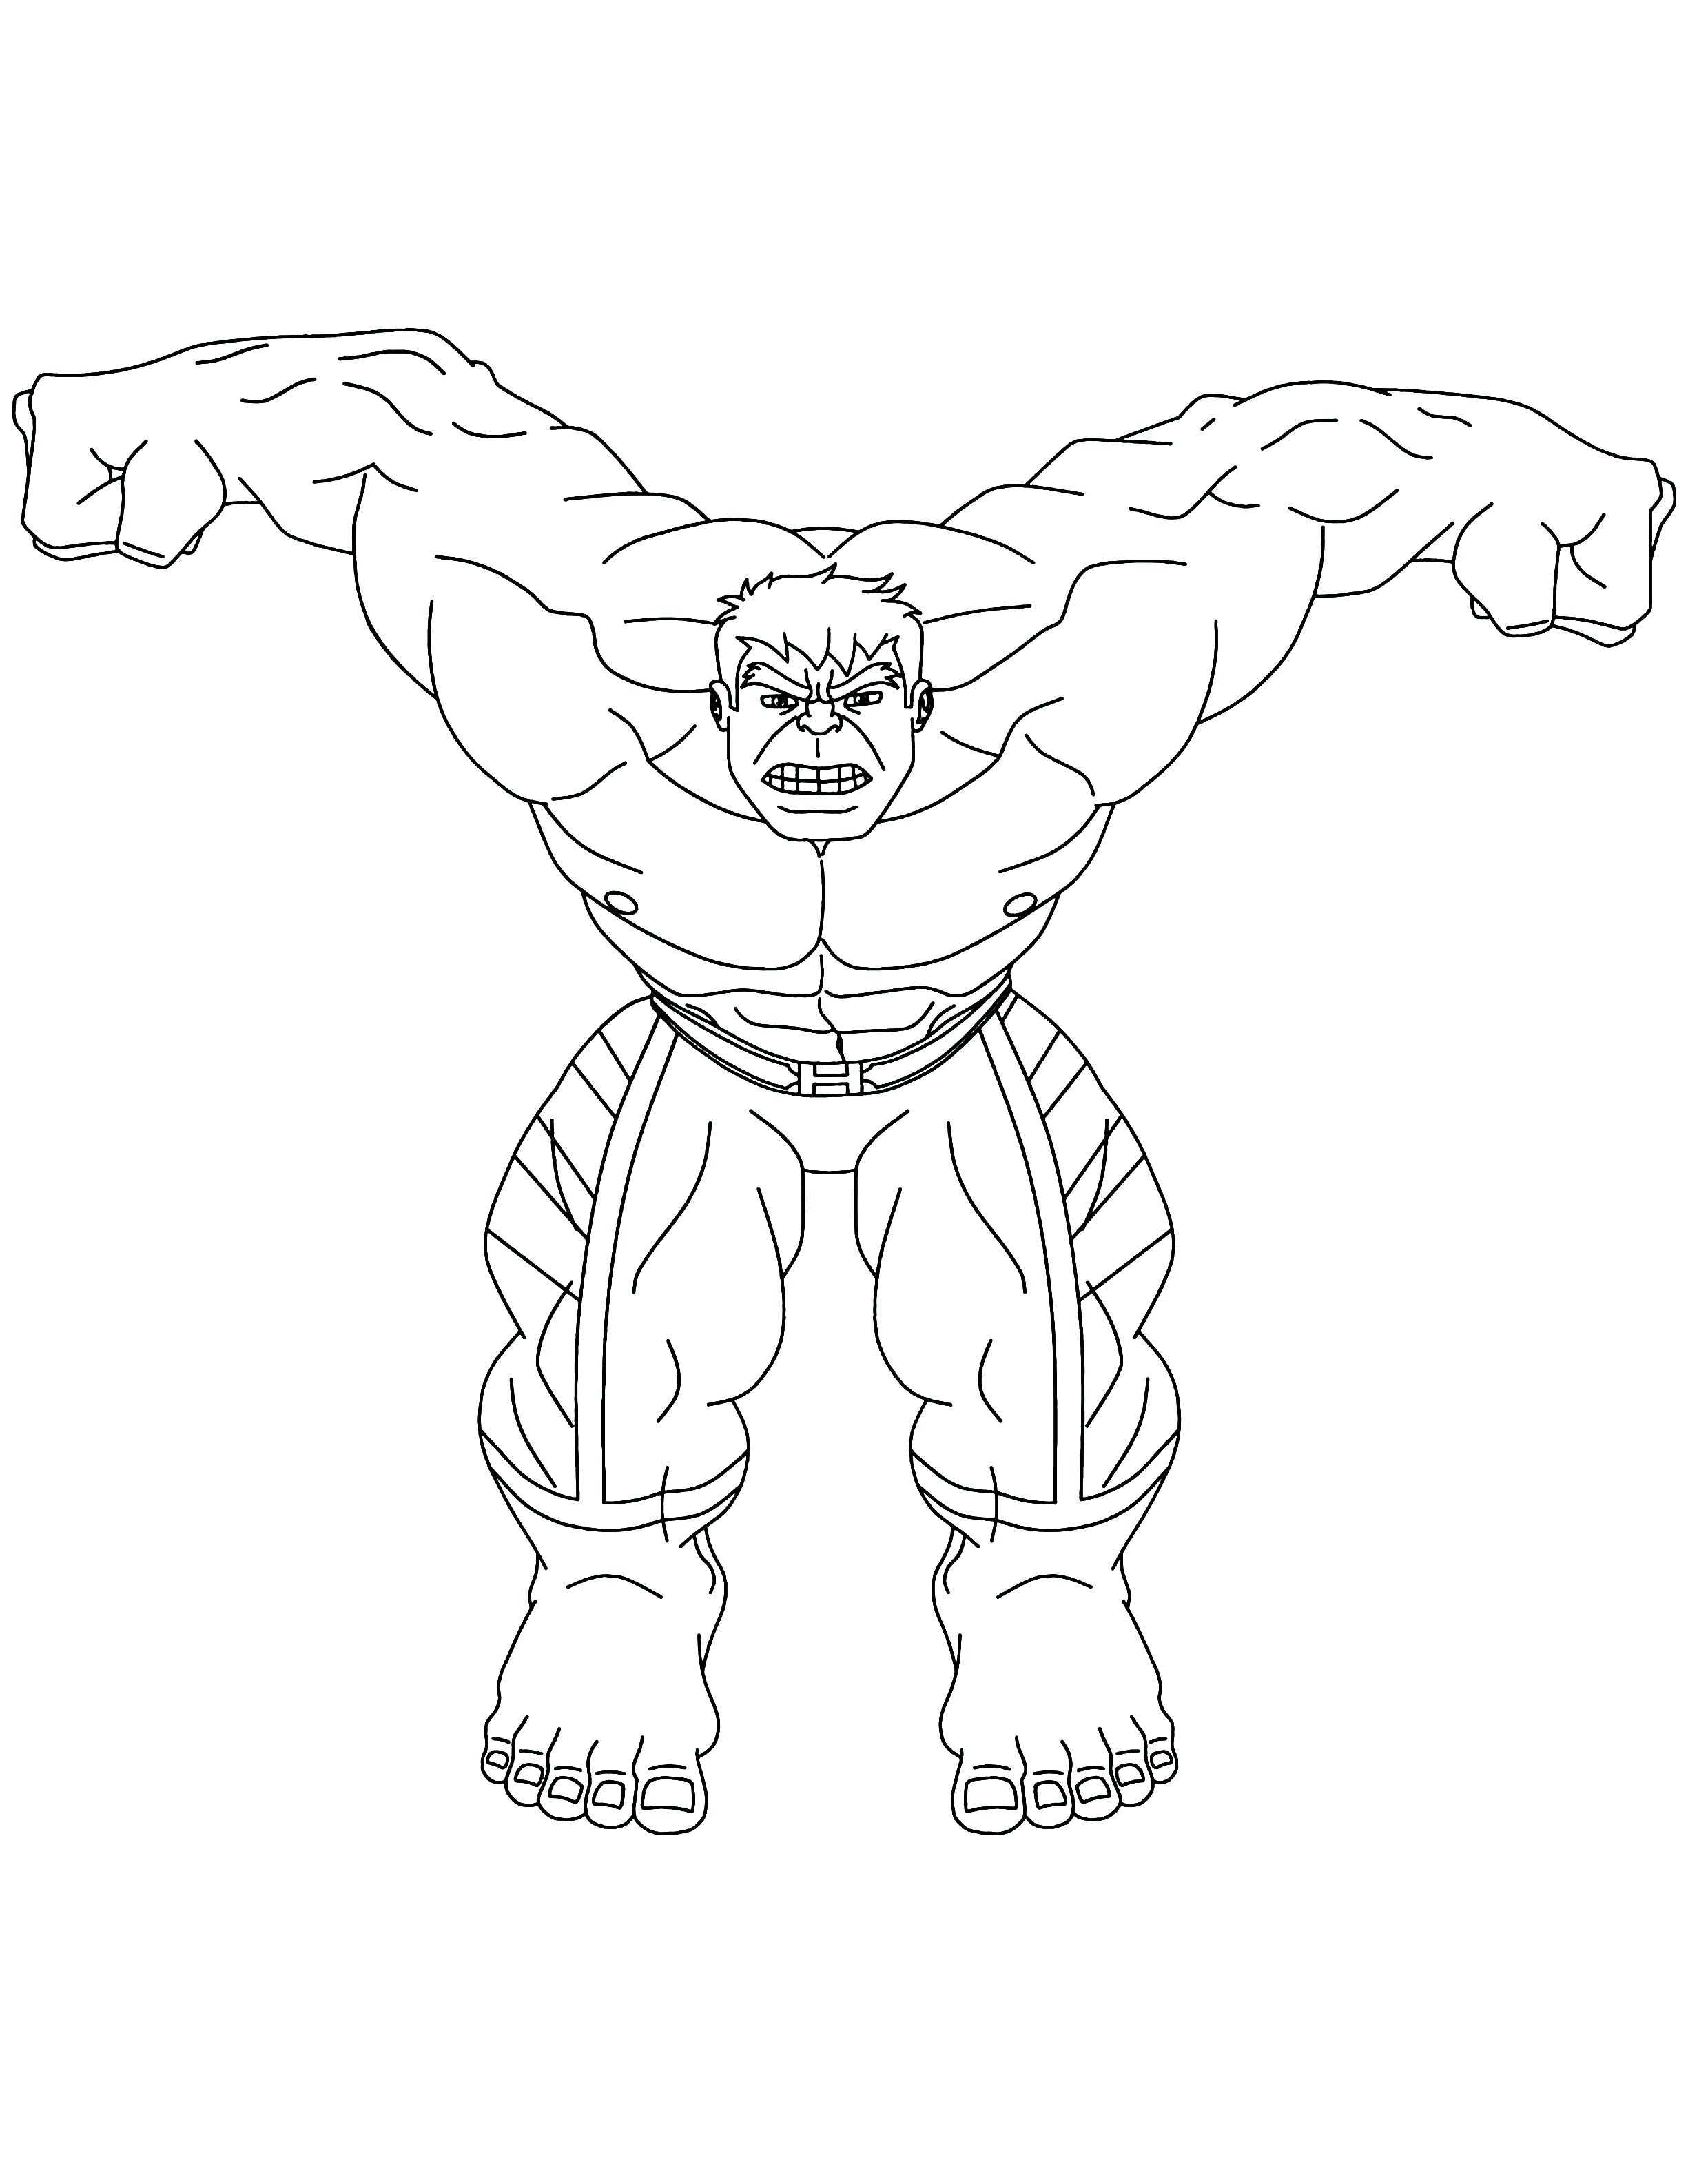 30 Hulk Coloring Pages For Kids Hulk Coloring Pages Superhero Coloring Pages Puppy Coloring Pages